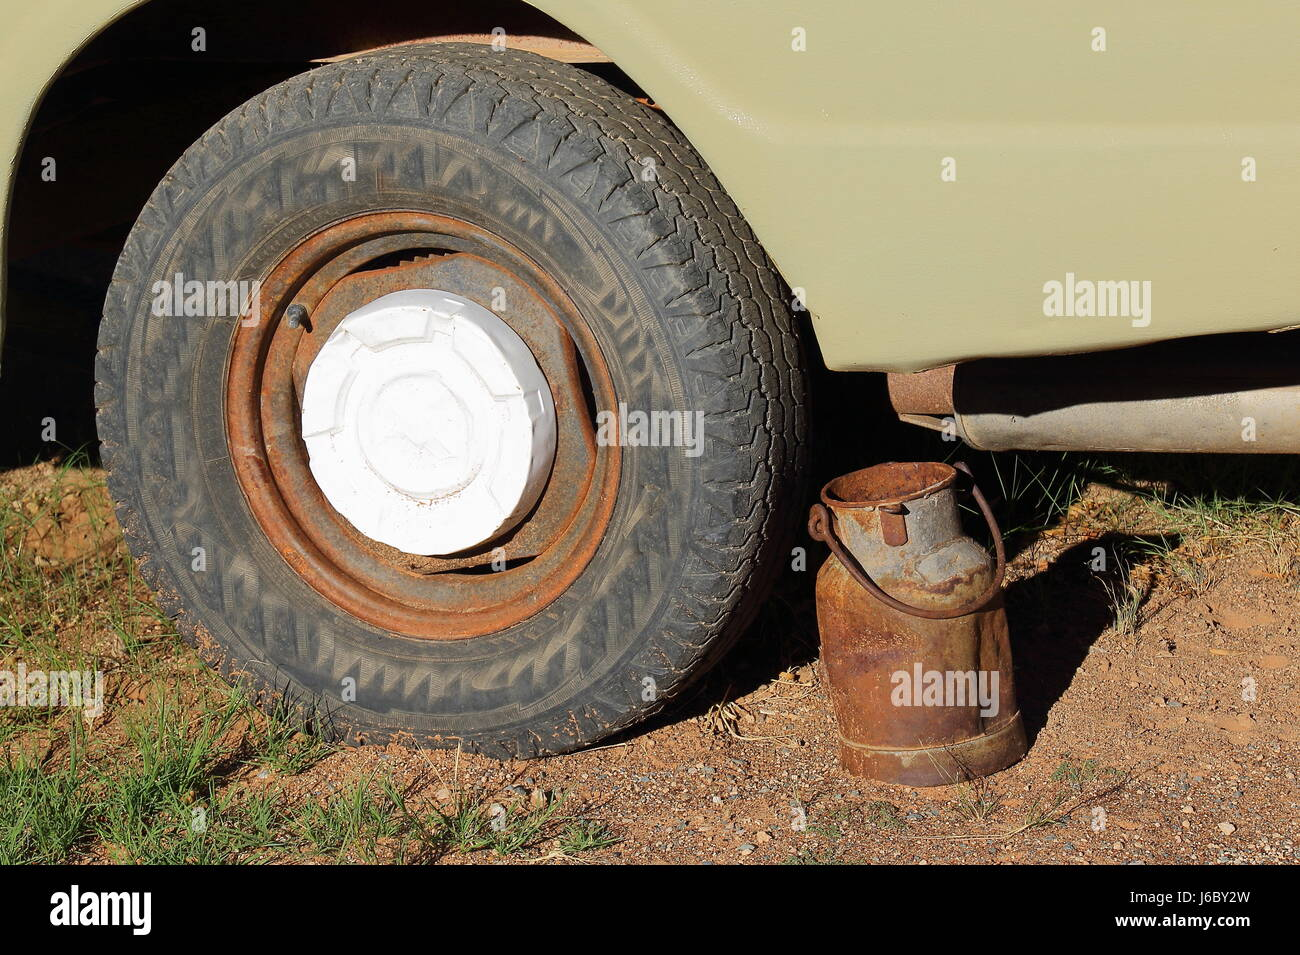 A rusted milk can next to the wheel of an old and abandoned vehicle - Stock Image